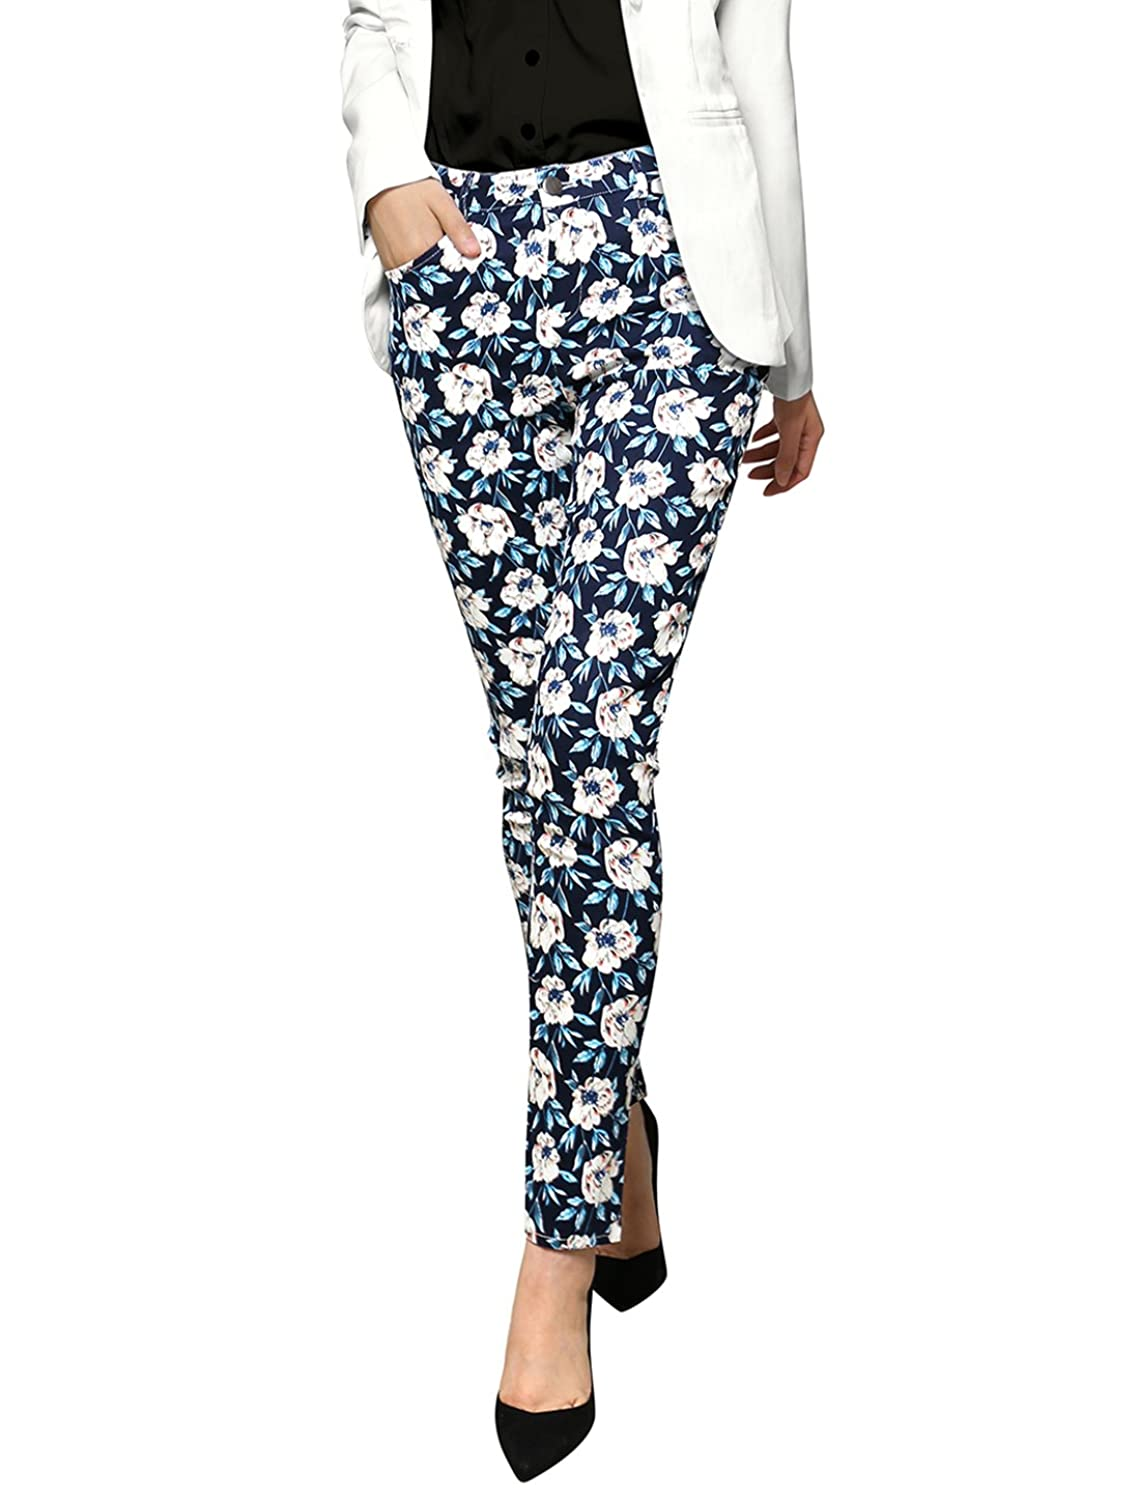 Allegra K Women's Floral Print Skinny Fit Stretch Casual Pants Trousers